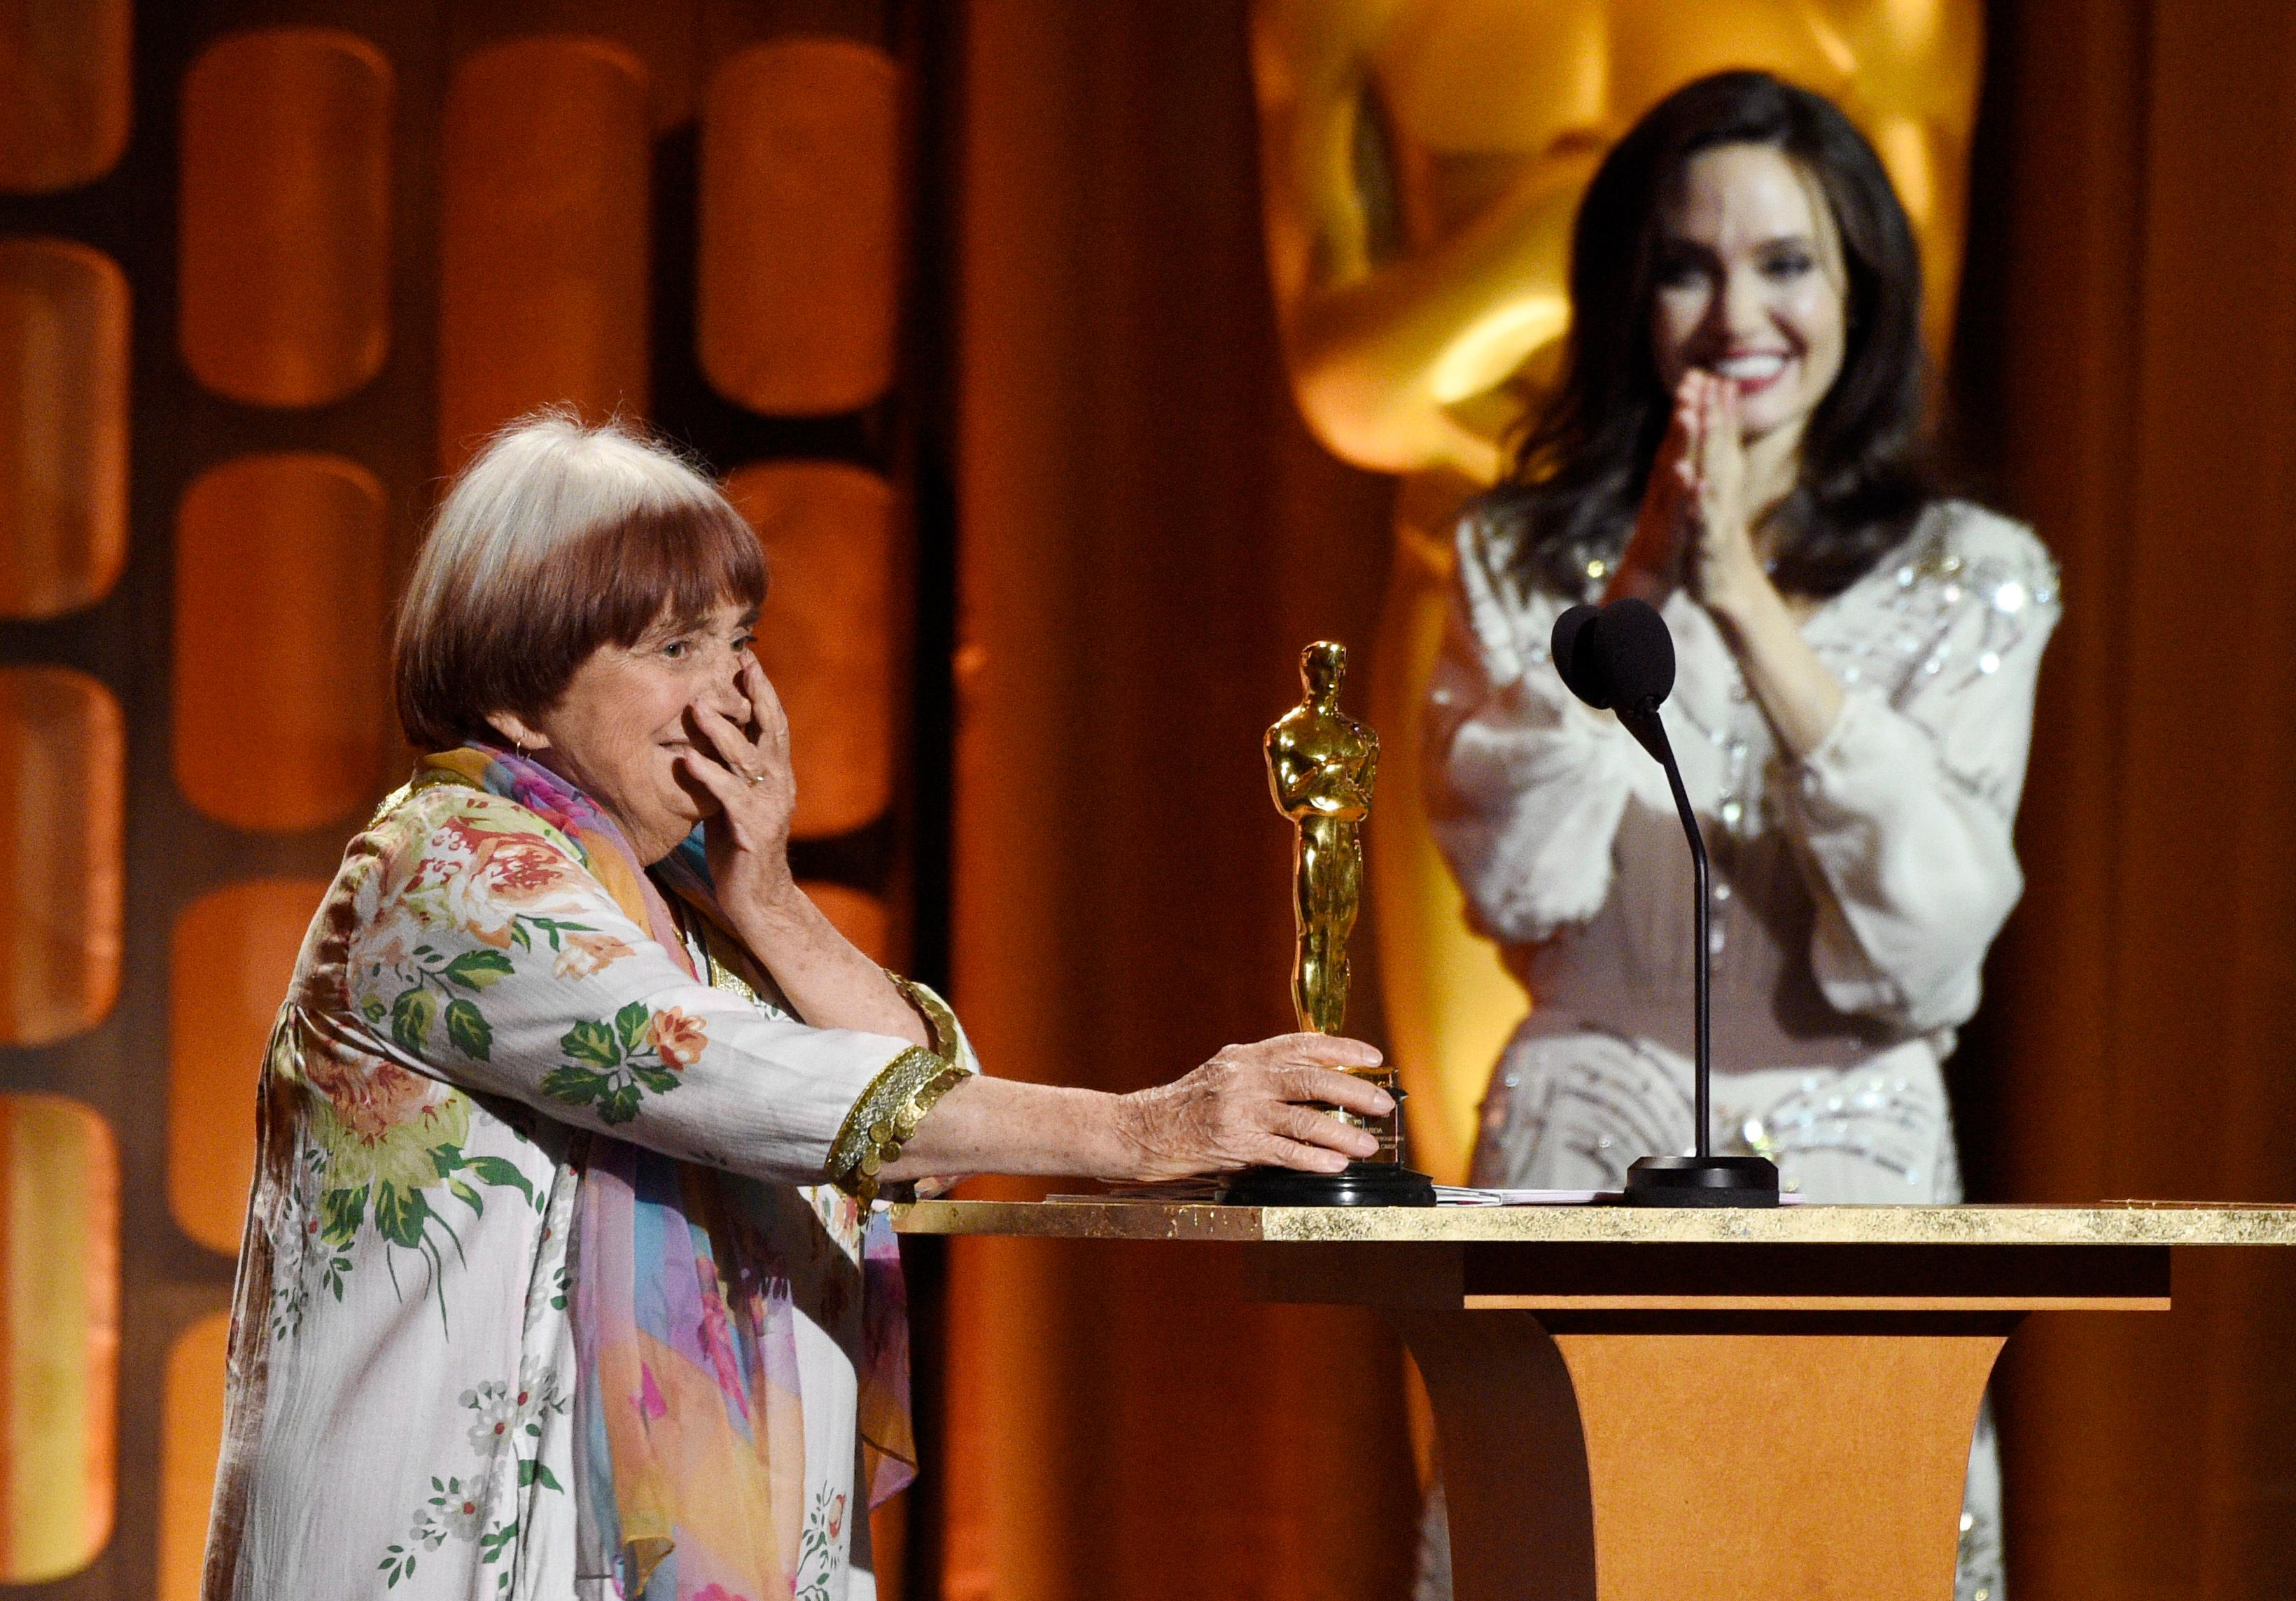 French director Agnes Varda, left, reacts to receiving an honorary Oscar as presenter Angelina Jolie looks on at the 2017 Governors Awards at The Ray Dolby Ballroom on Saturday, Nov. 11, 2017, in Los Angeles. (Photo by Chris Pizzello/Invision/AP)